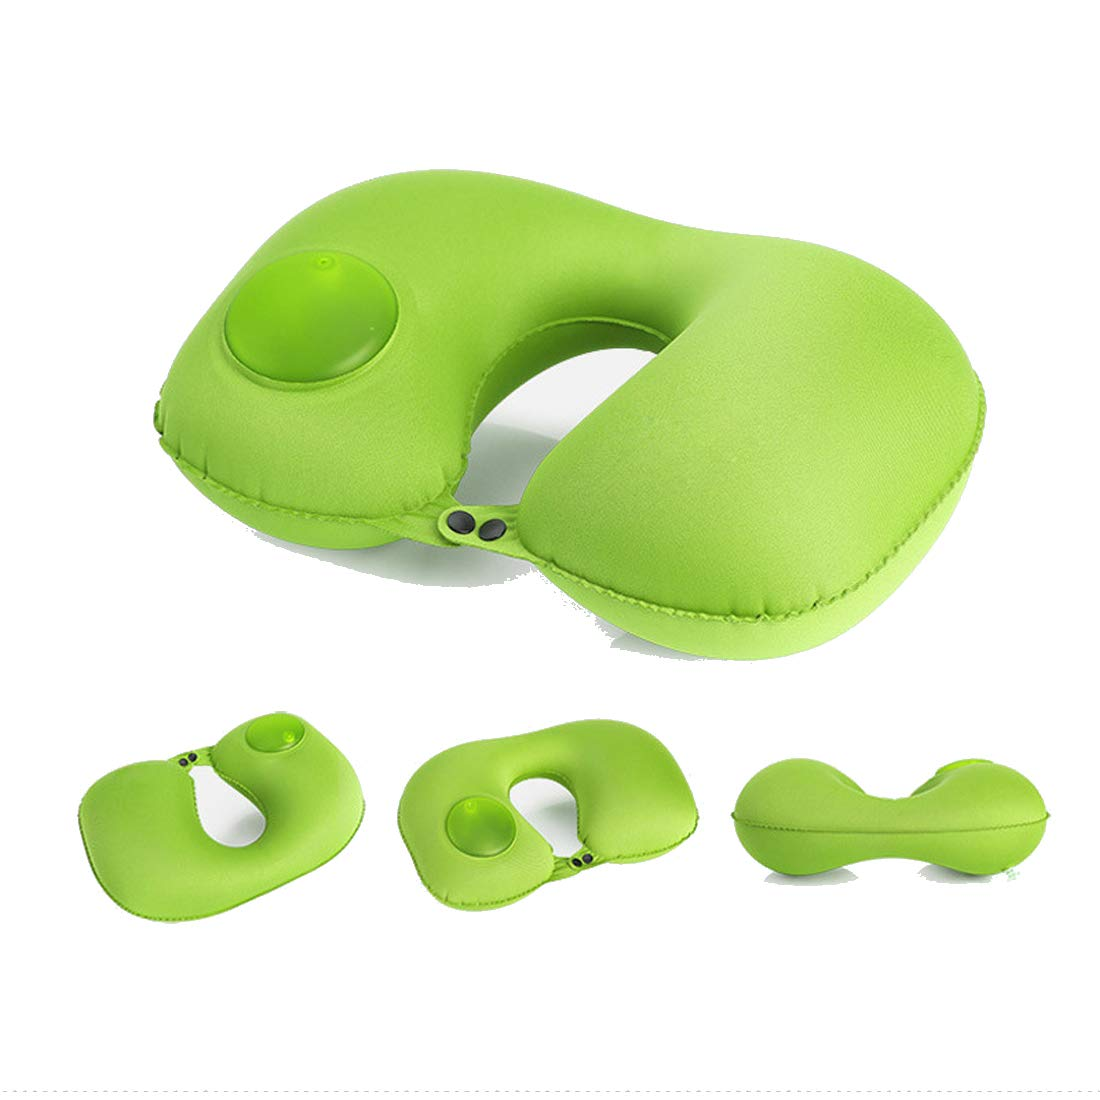 Alotm Inflatable Travel Pillow Compact Travel Neck Pillow for Car, Airplane, Train, Bus, Home and Office, Fast Inflate/Deflate, Support Head and Neck (Green)